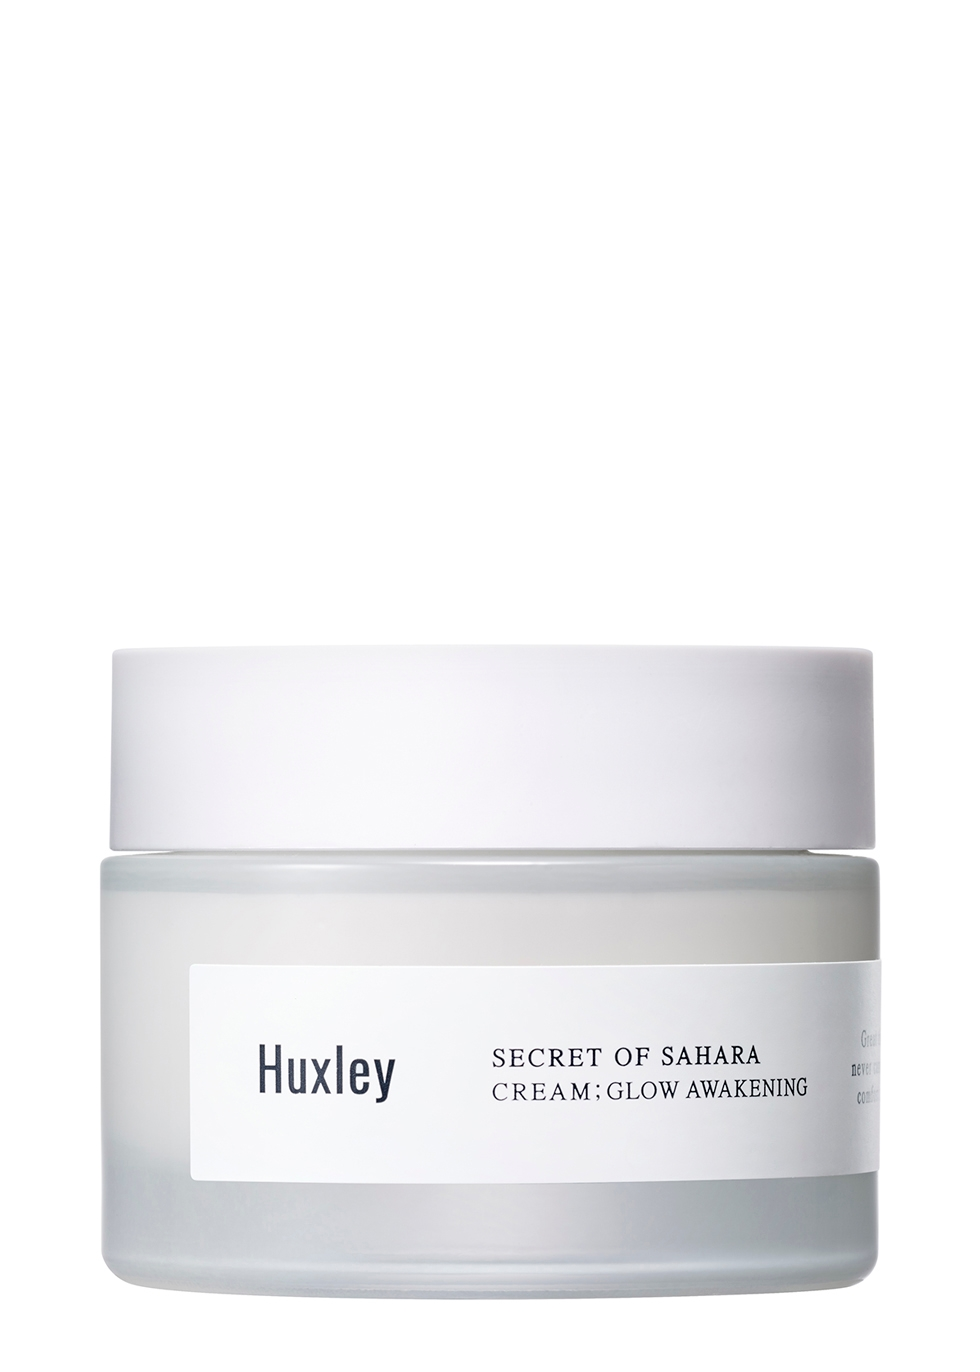 Brightening Cream: Glow Awakening 50ml - HUXLEY